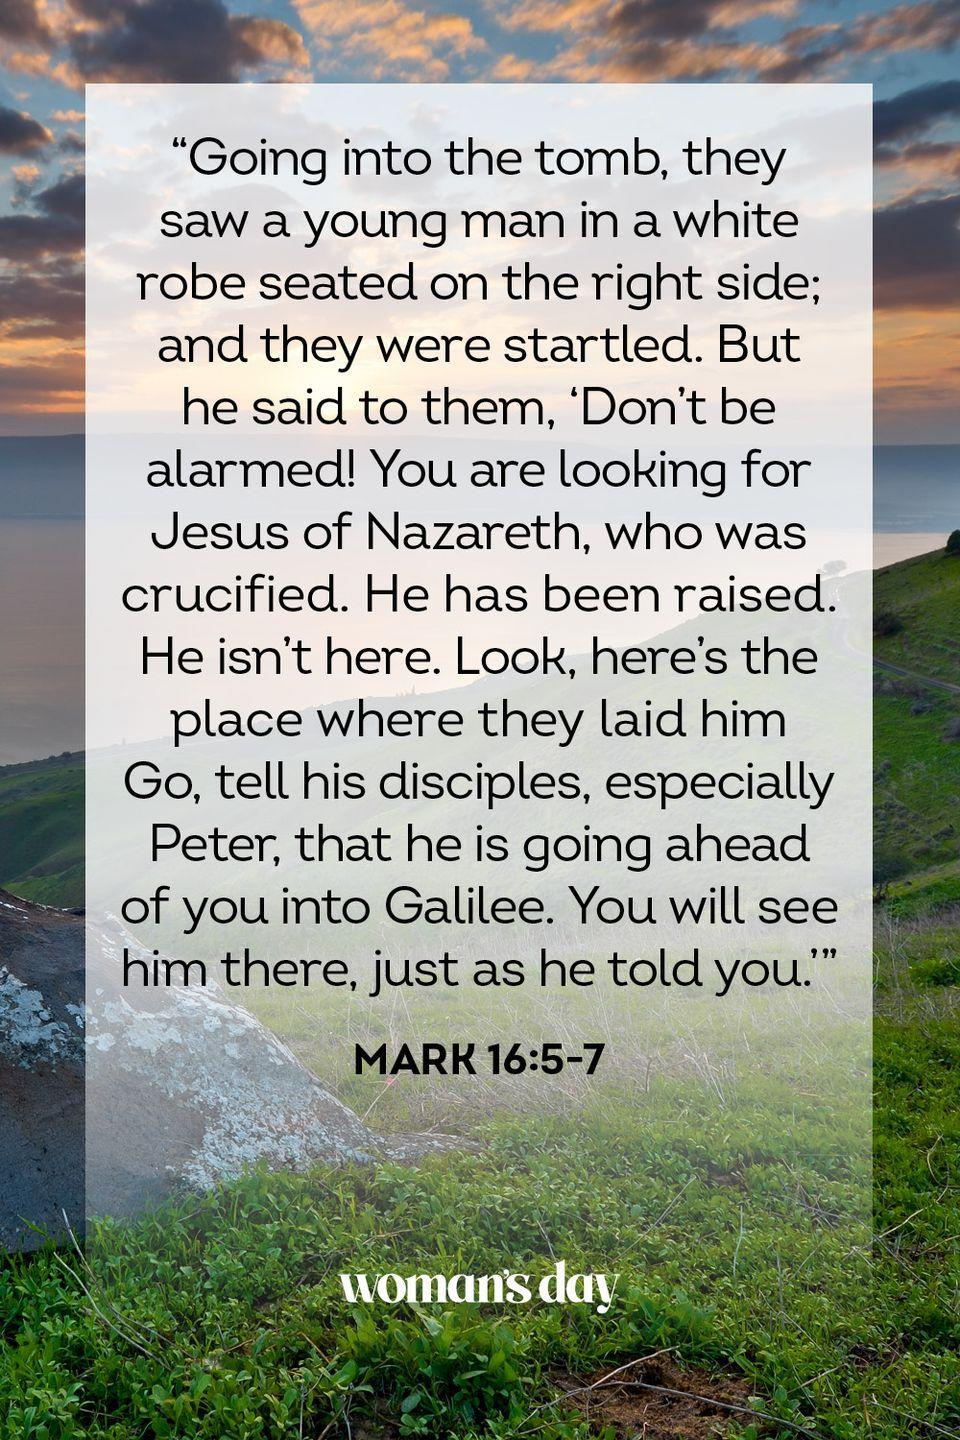 "<p>""Going into the tomb, they saw a young man in a white robe seated on the right side; and they were startled. But he said to them, 'Don't be alarmed! You are looking for Jesus of Nazareth, who was crucified. He has been raised. He isn't here. Look, here's the place where they laid him Go, tell his disciples, especially Peter, that he is going ahead of you into Galilee. You will see him there, just as he told you.'"" — Mark 16:5-7</p>"